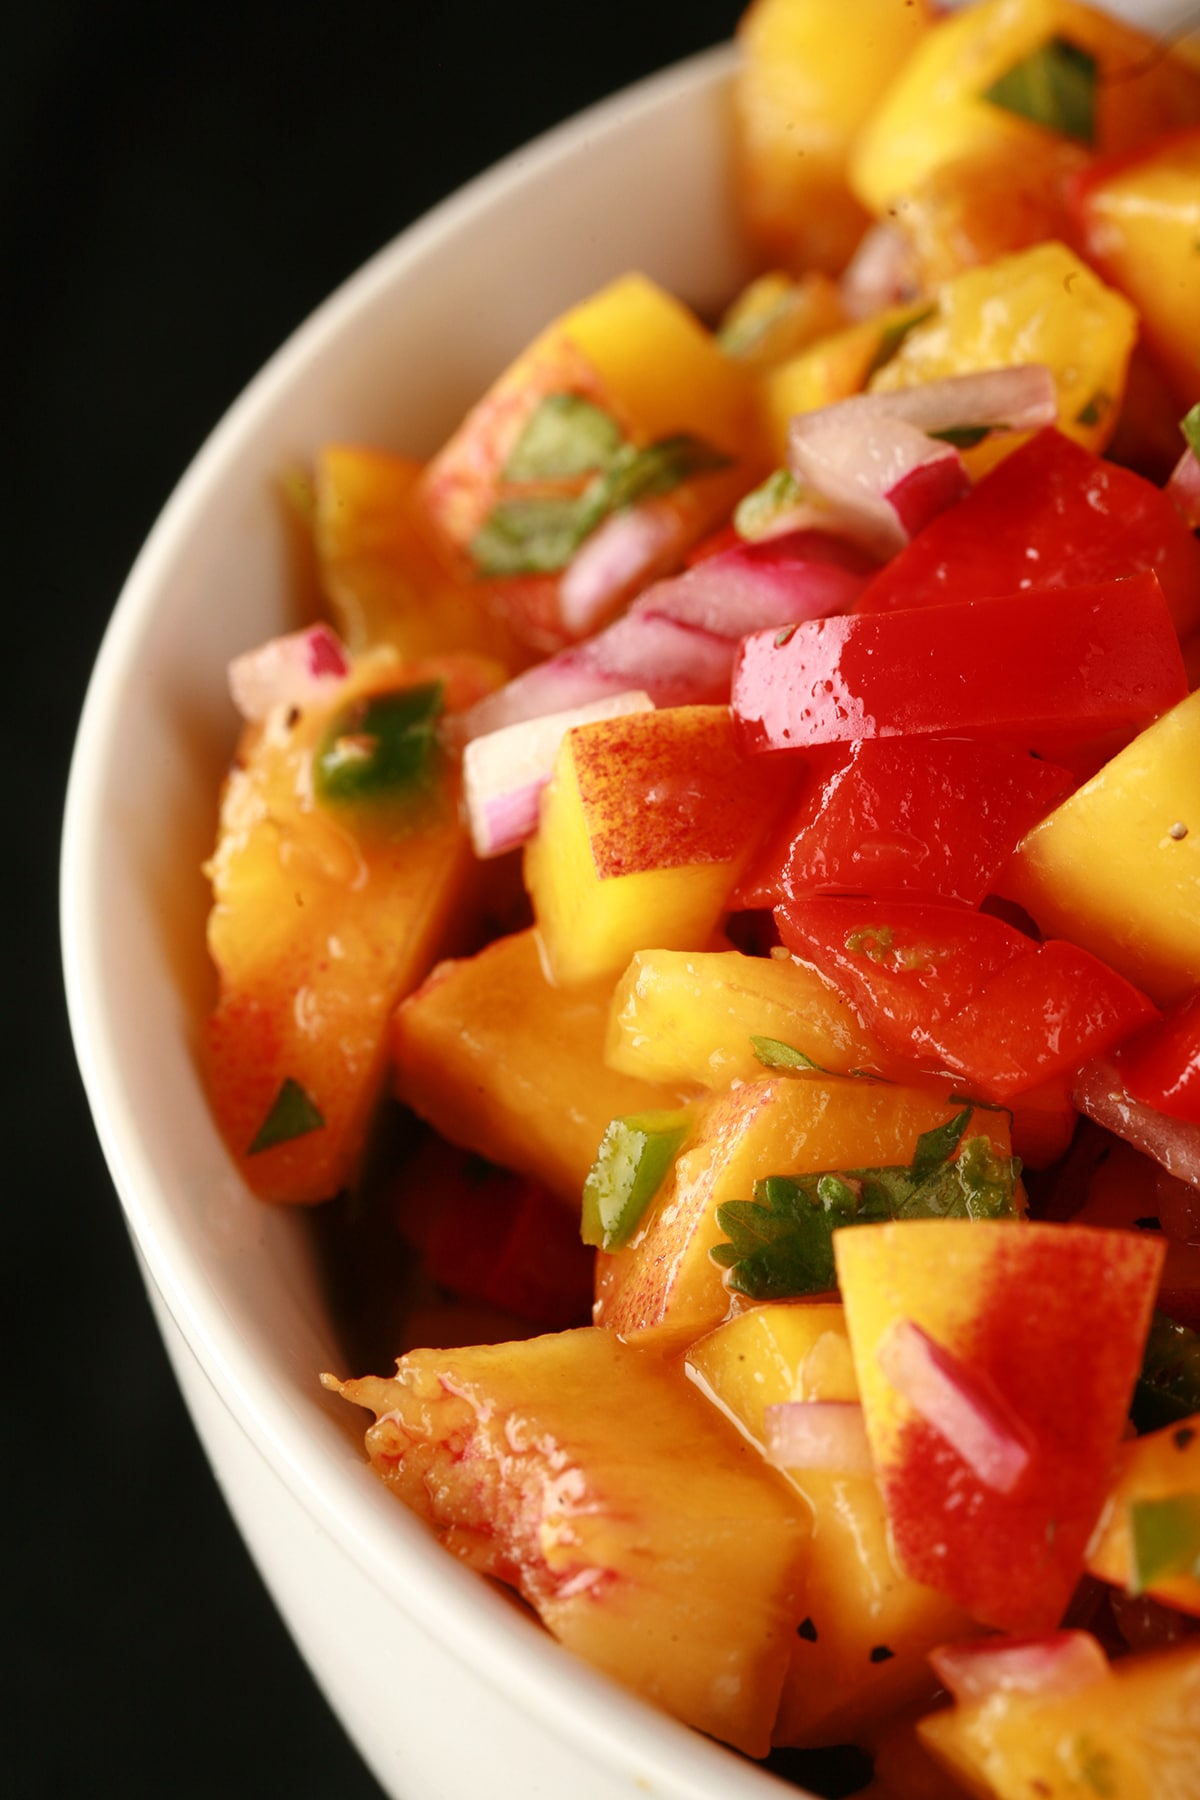 A close up photo of fruit salsa, with peaches, red pepper, red onions, jamapeno, and cilatro visible.